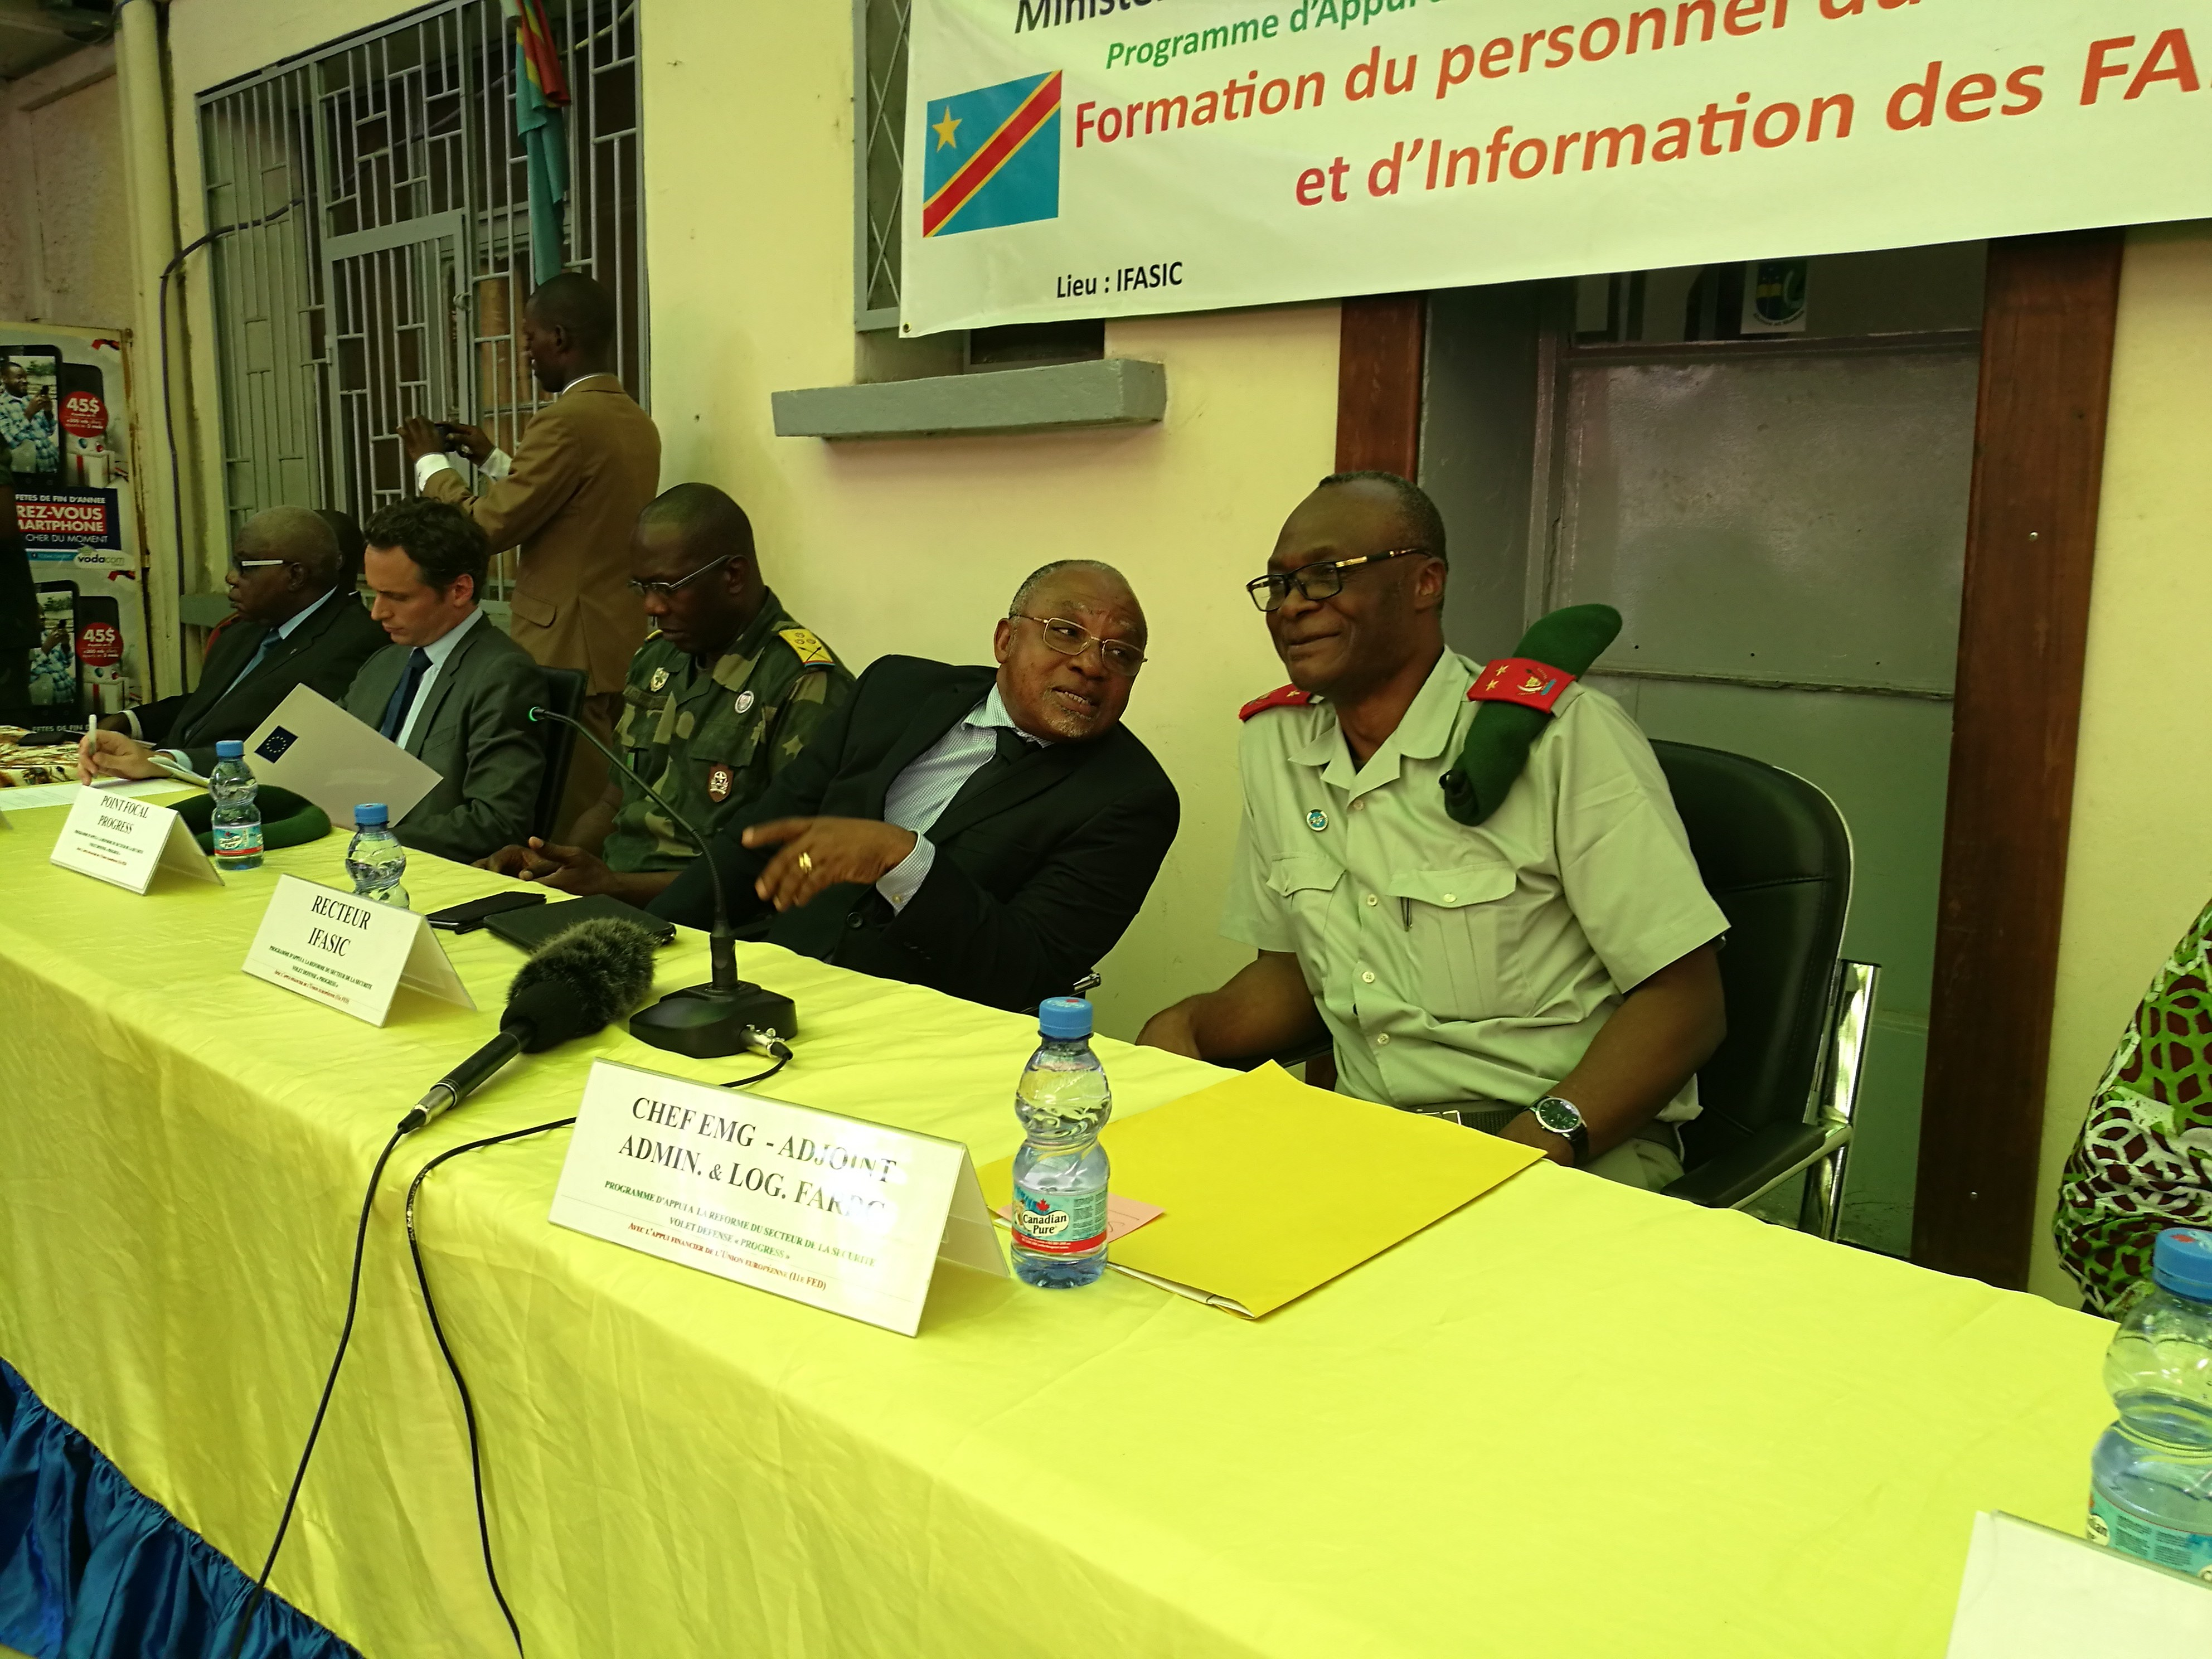 Fin de la formation des officiers et civils de la cellule de communication des FARDC par l'IFASIC